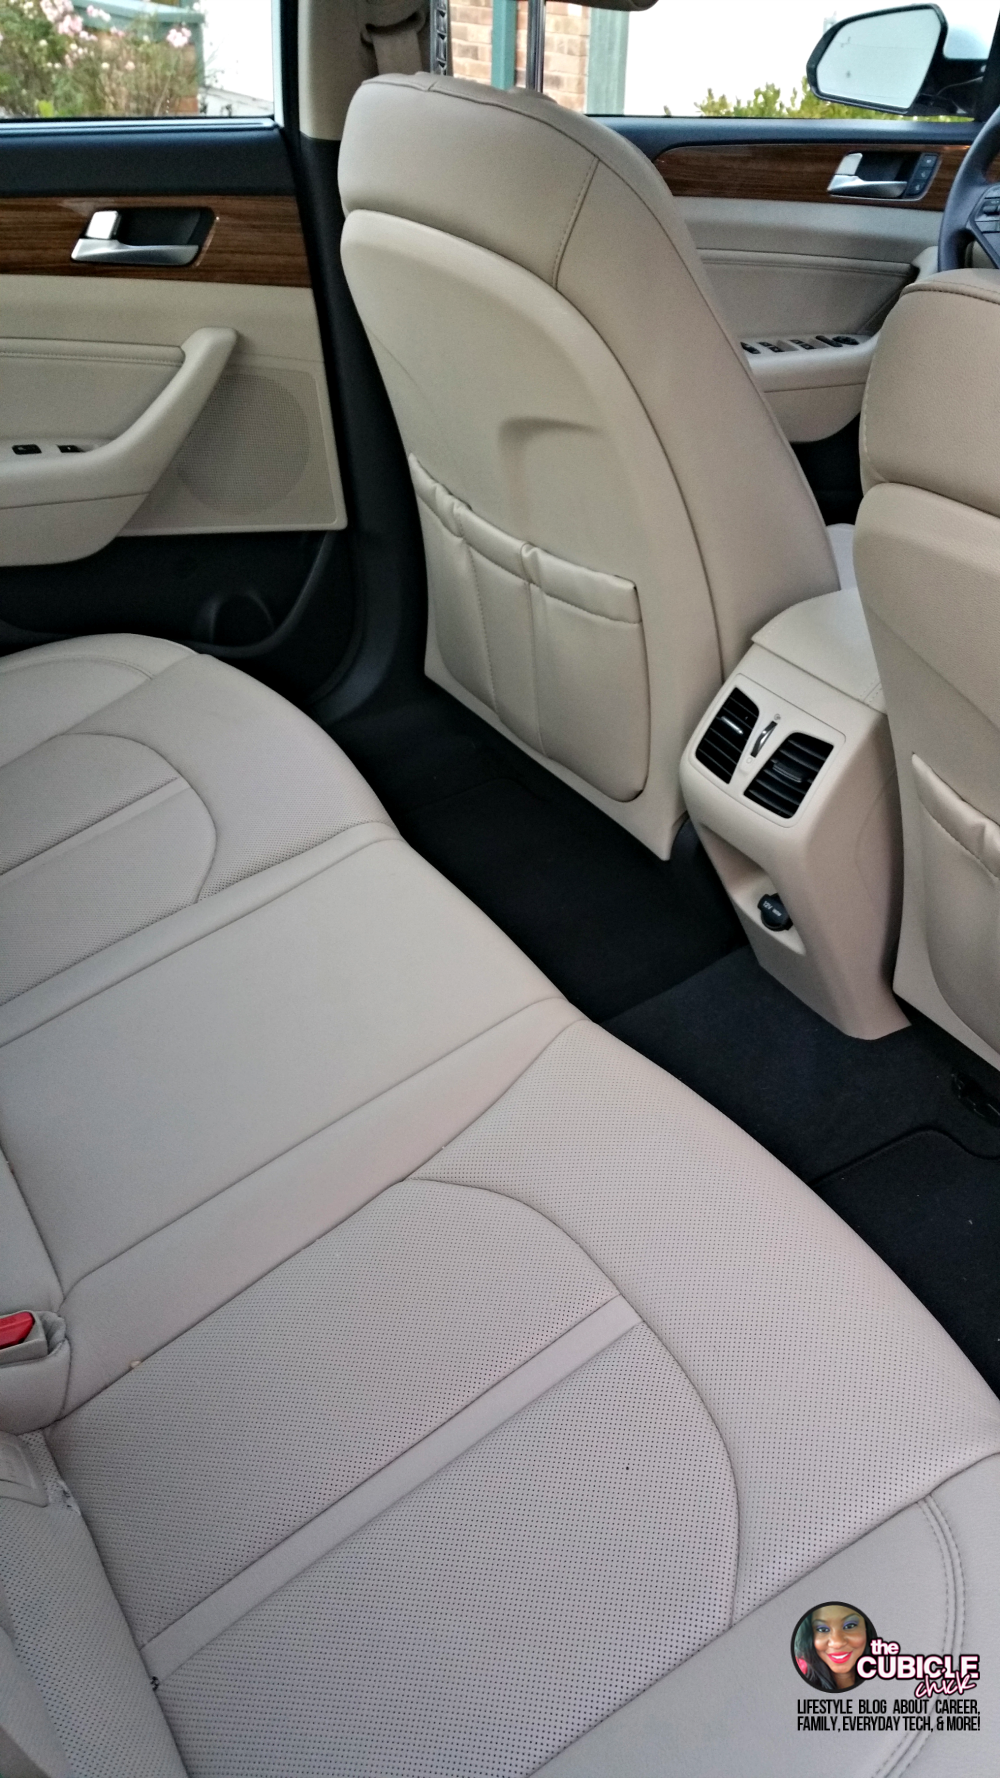 2015 hyundai sonata limited review - 2015 hyundai sonata interior pictures ...